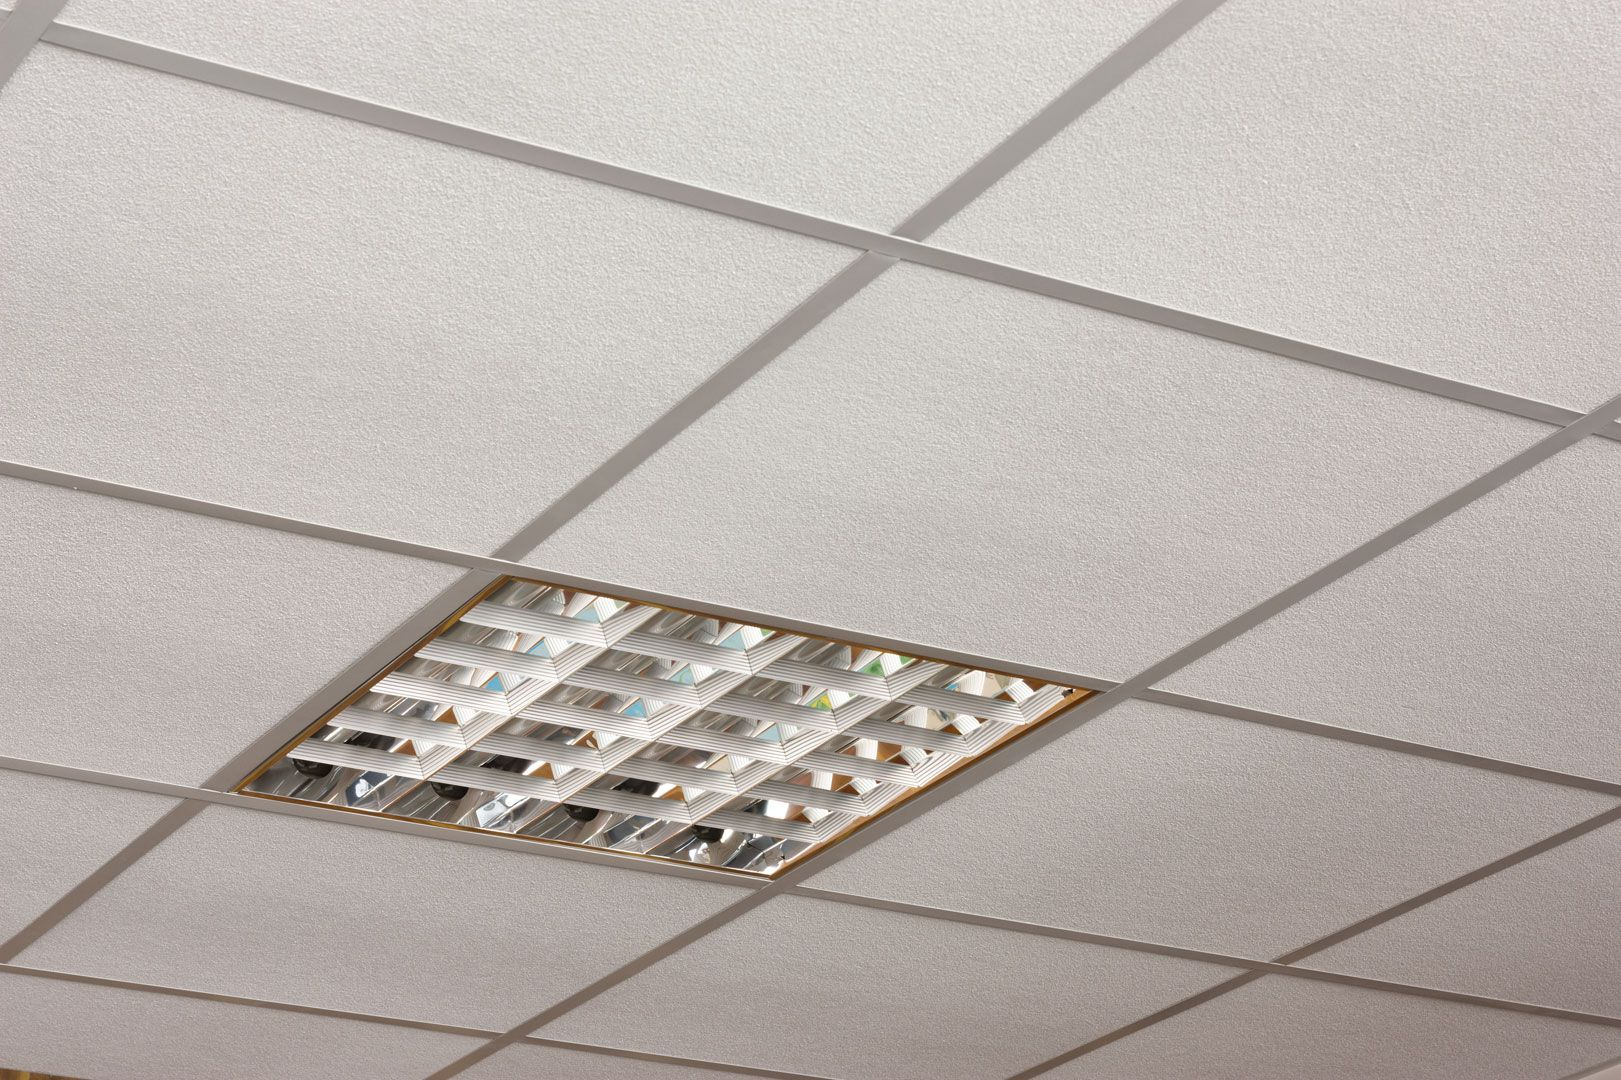 Ceiling tiles market market research reports pinterest ceiling ceiling tiles market dailygadgetfo Image collections